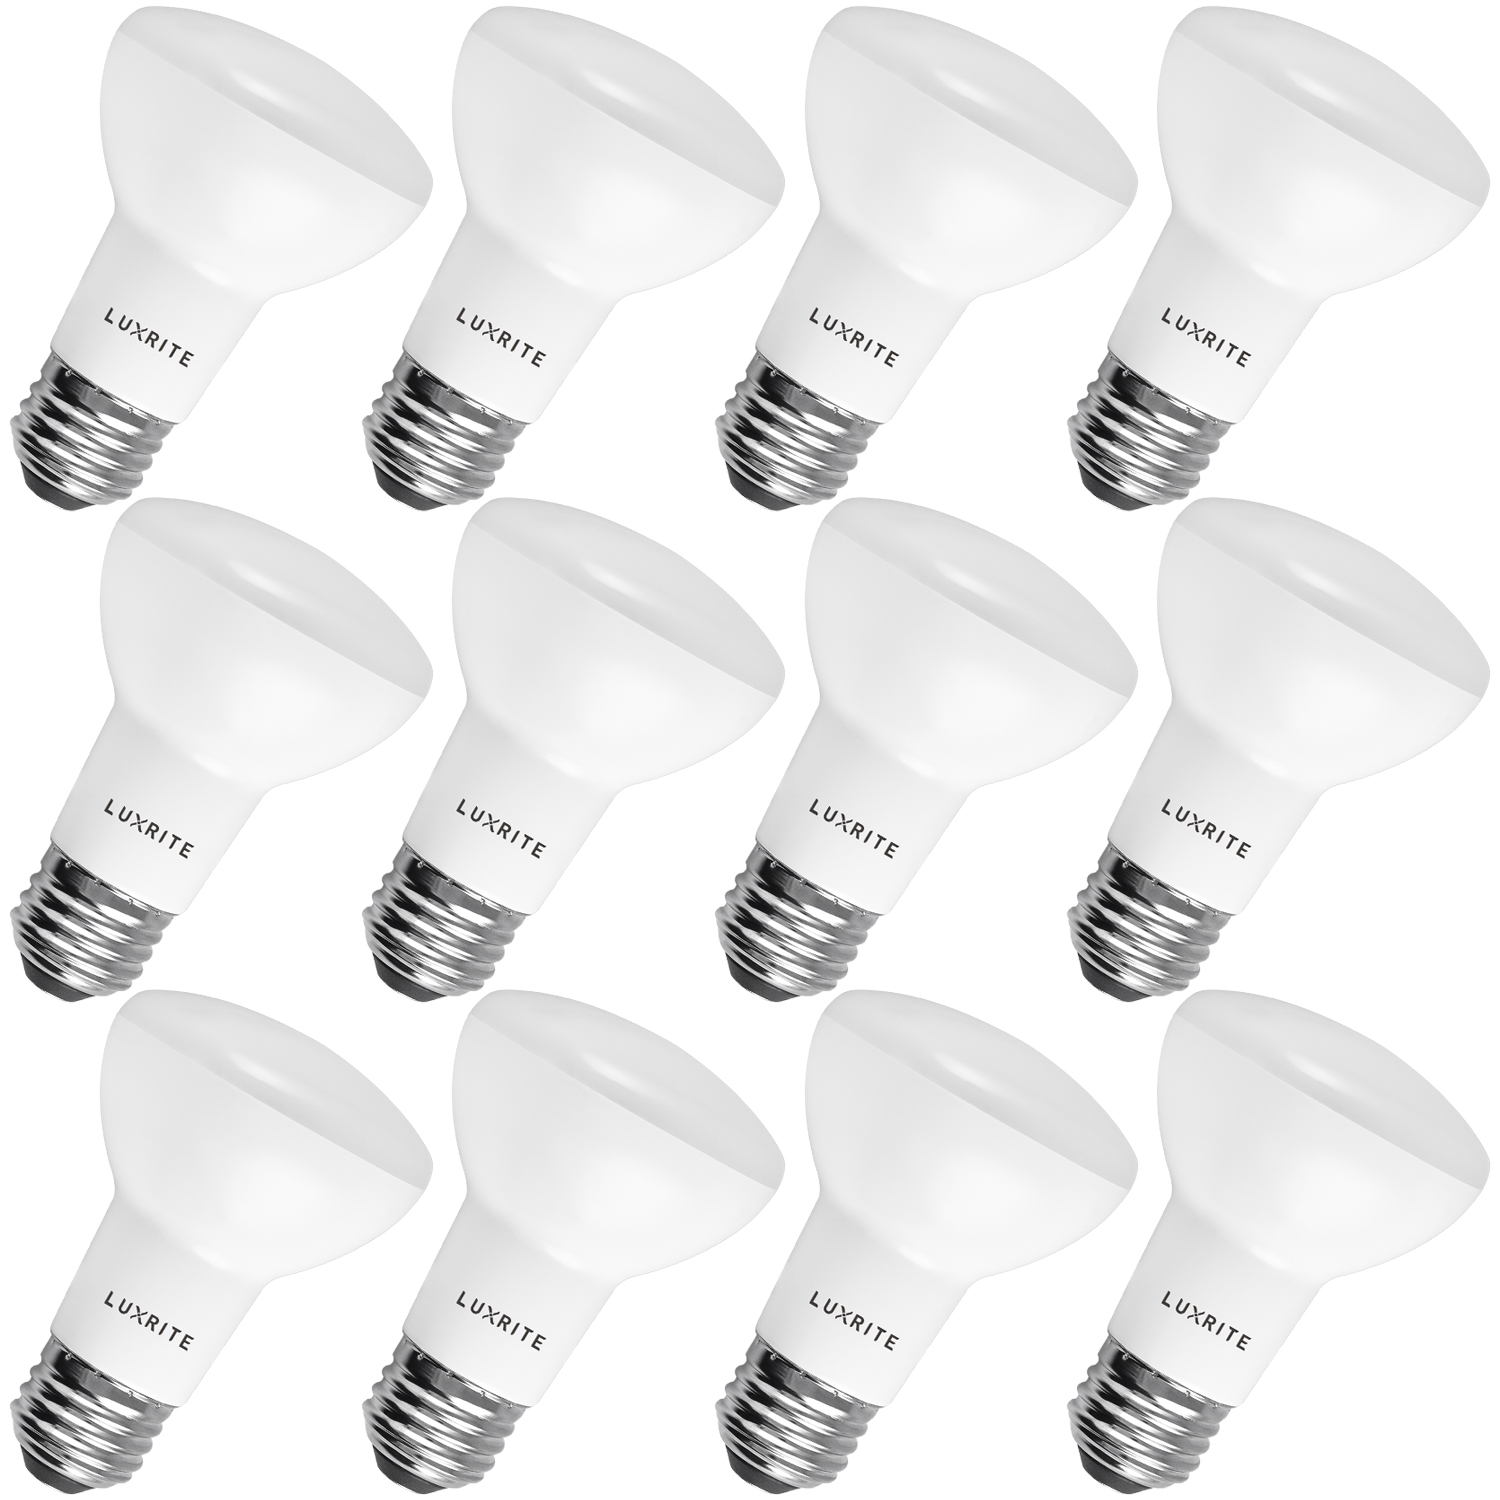 12-Pack BR20 LED Bulb, Luxrite, 45W Equivalent, 2700K Warm White, Dimmable, 460 Lumen, R20 LED Flood Light Bulb, 6.5W, ENERGY STAR, E26 Medium Base, Damp Rated, Perfect for Recessed and Track Lighting